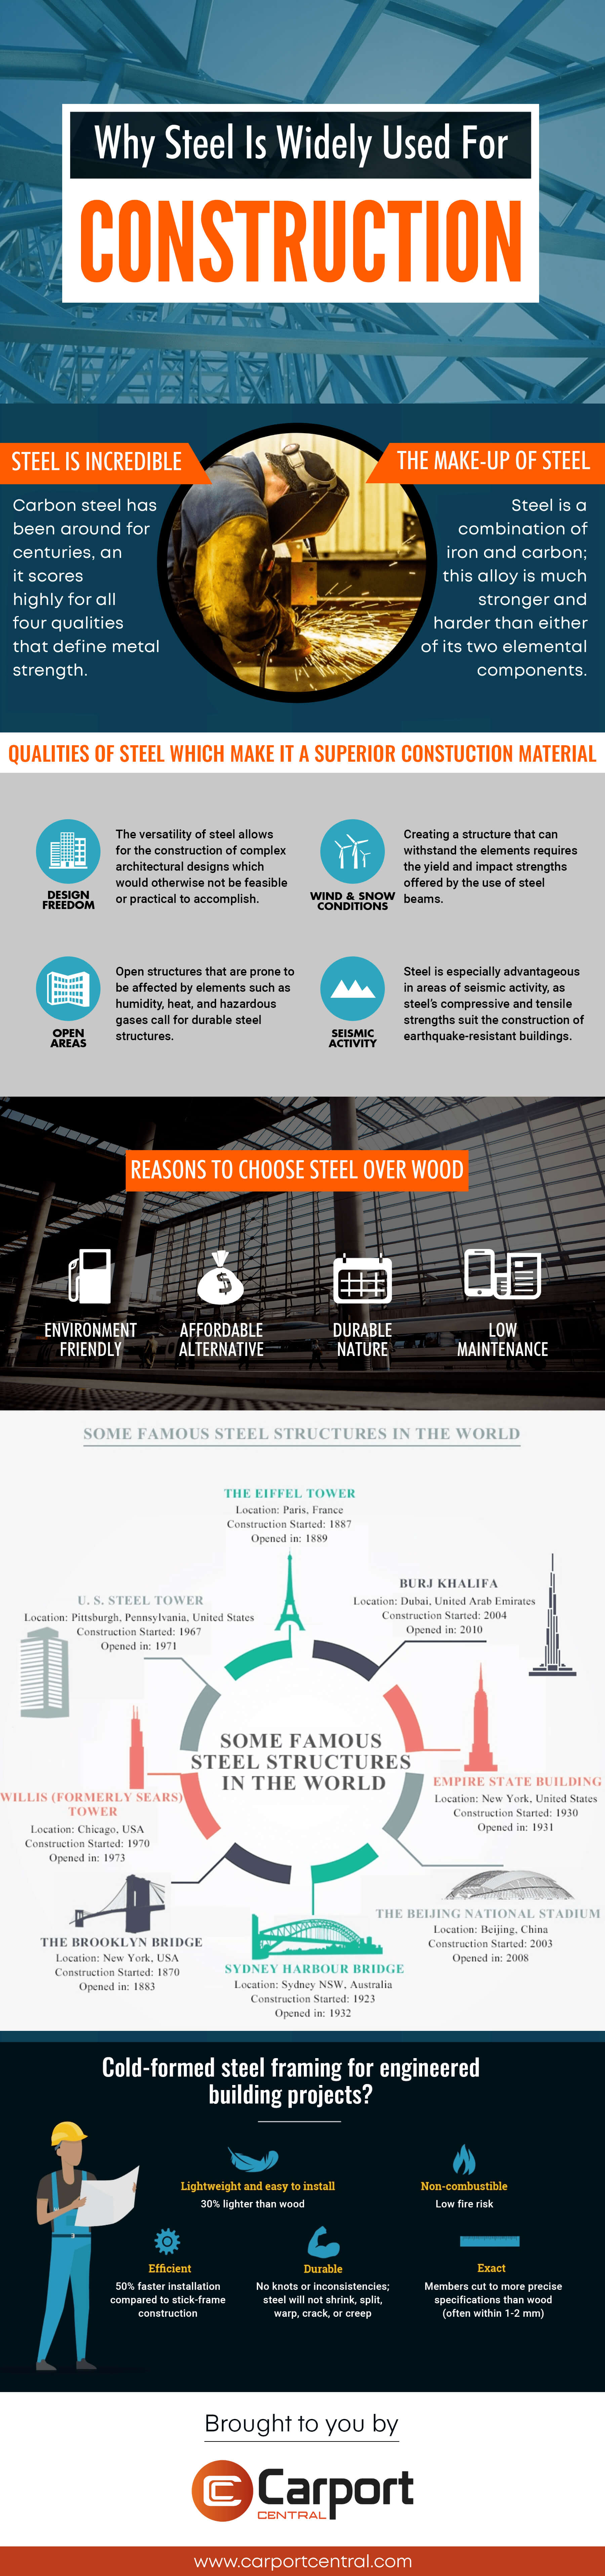 Why Steel is the Master Construction Material - Infographic